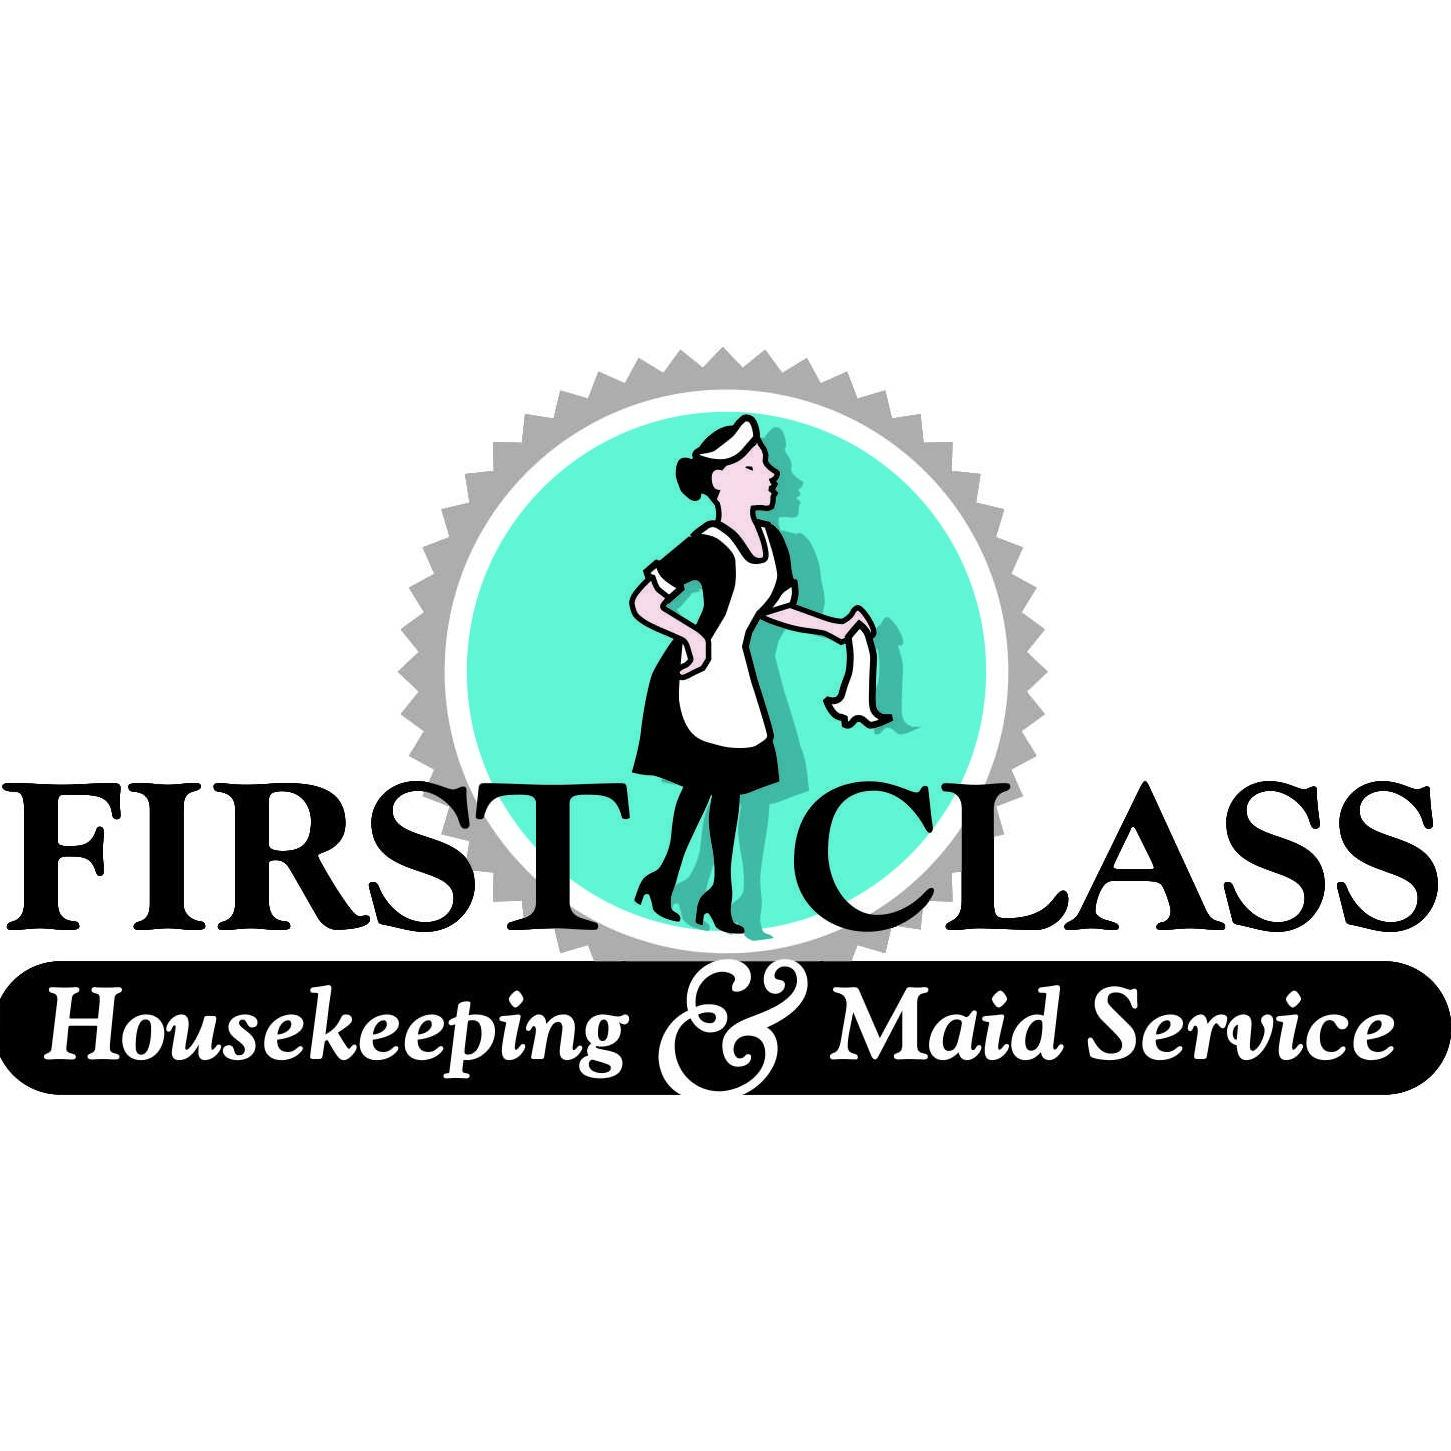 First Class Housekeeping & Maid Service